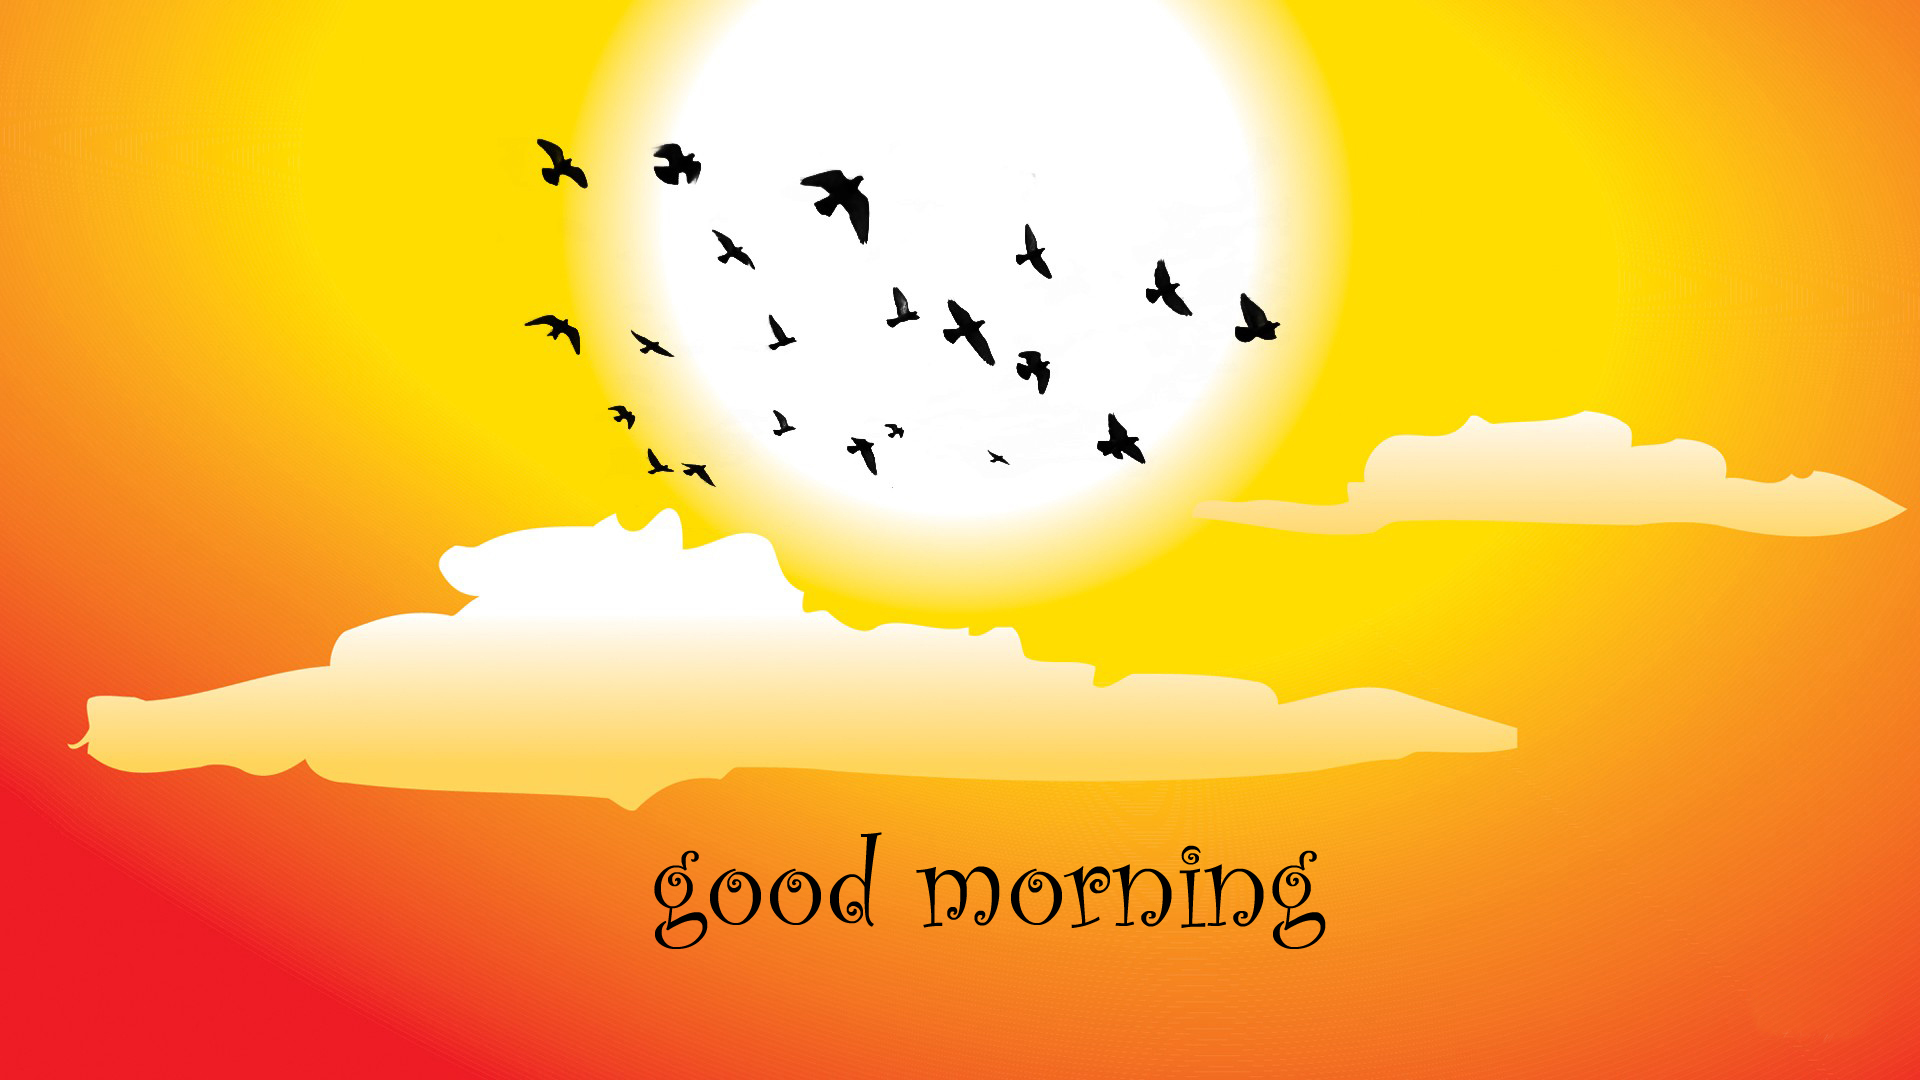 Good Morning Images HD Wallpaper